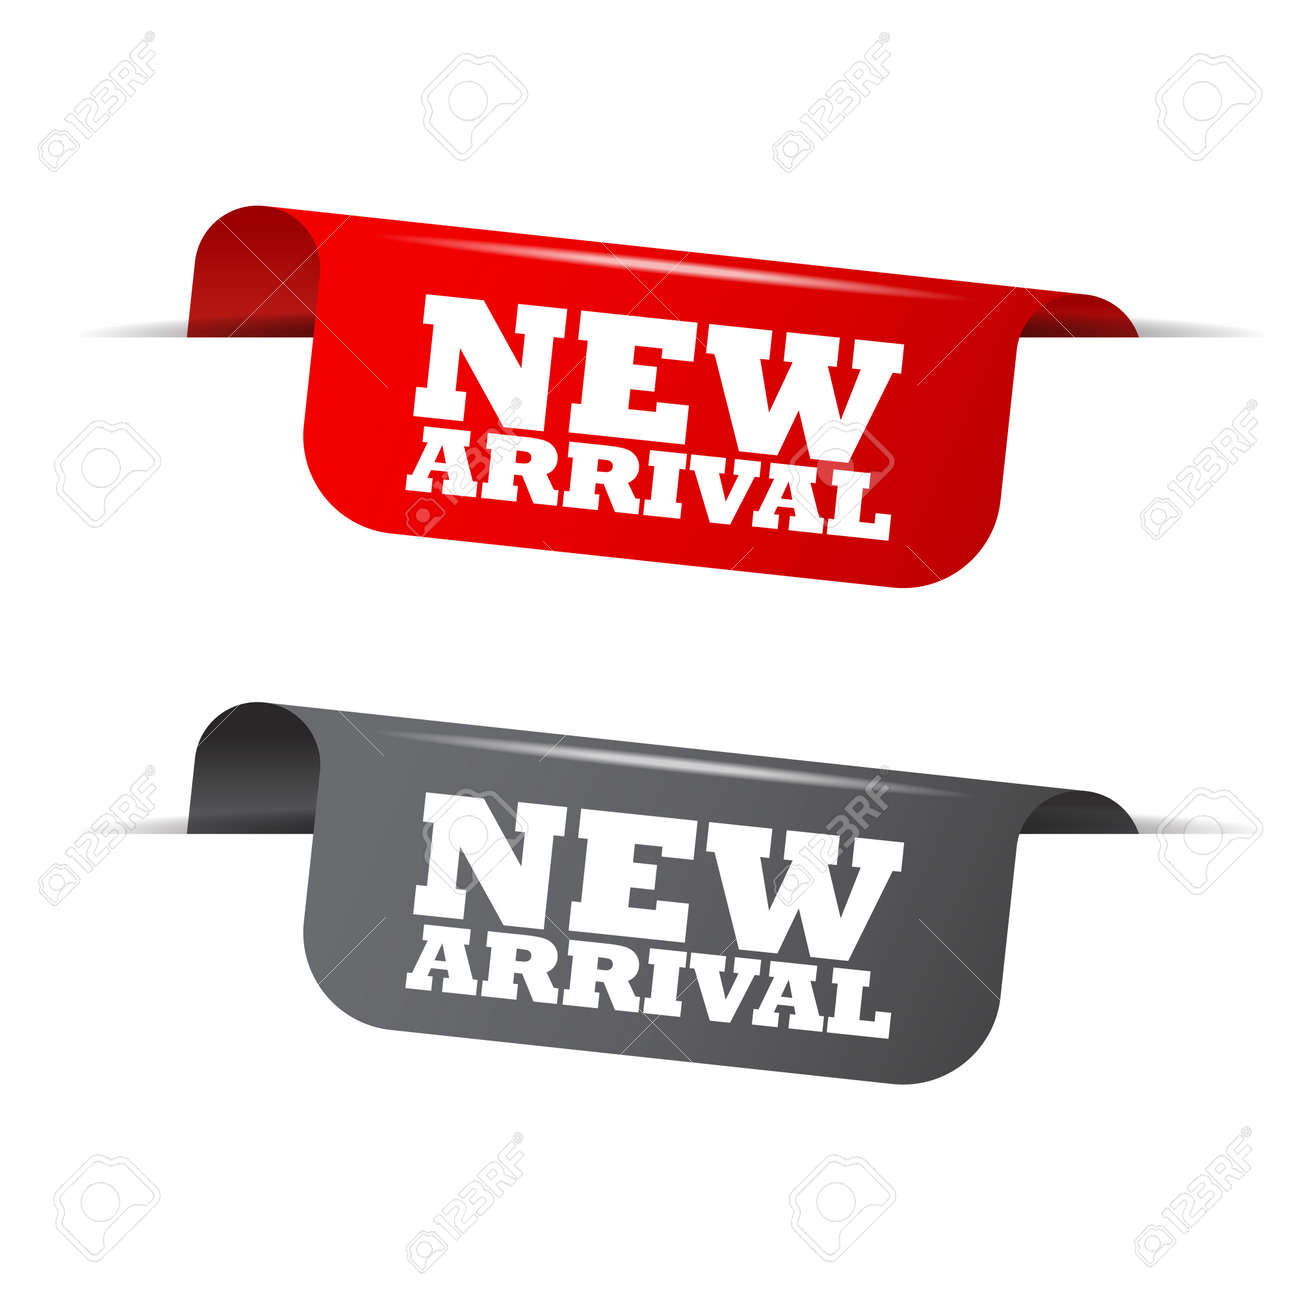 1739cdb2 new arrival, red banner new arrival, vector element new arrival Stock  Vector - 62597299